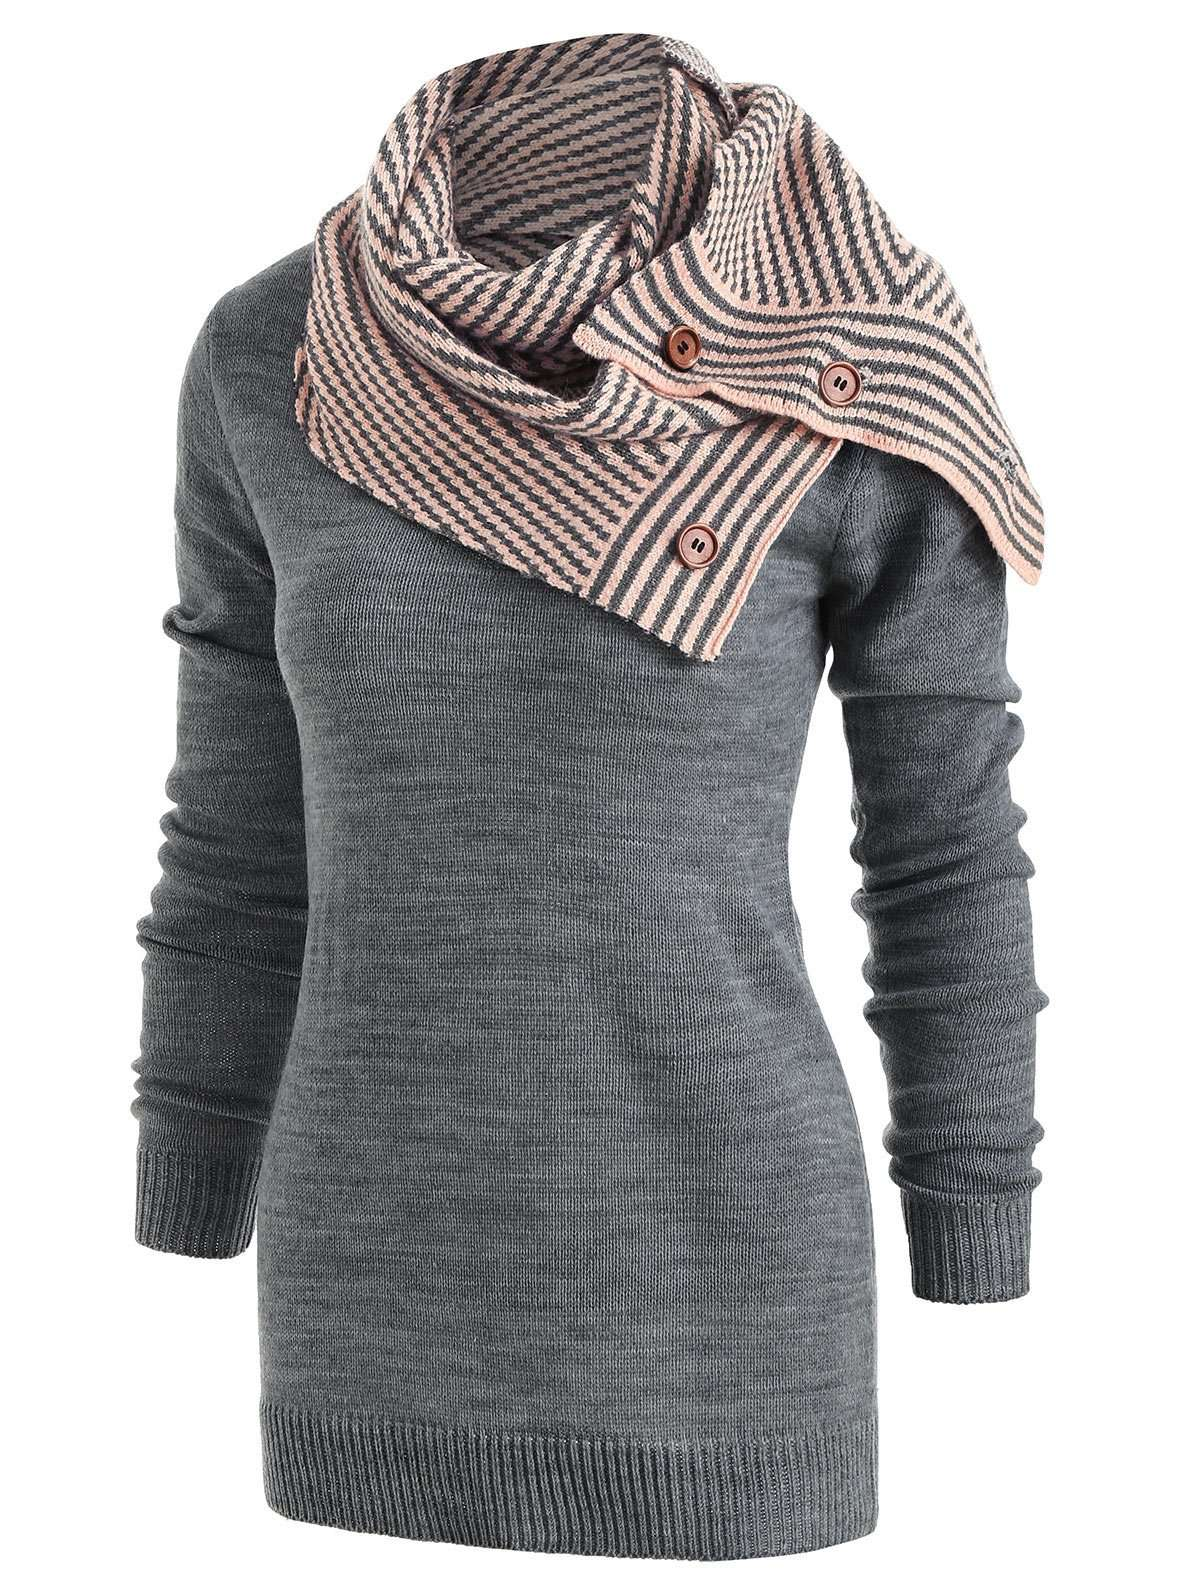 Pullover Sweater with Striped Scarf